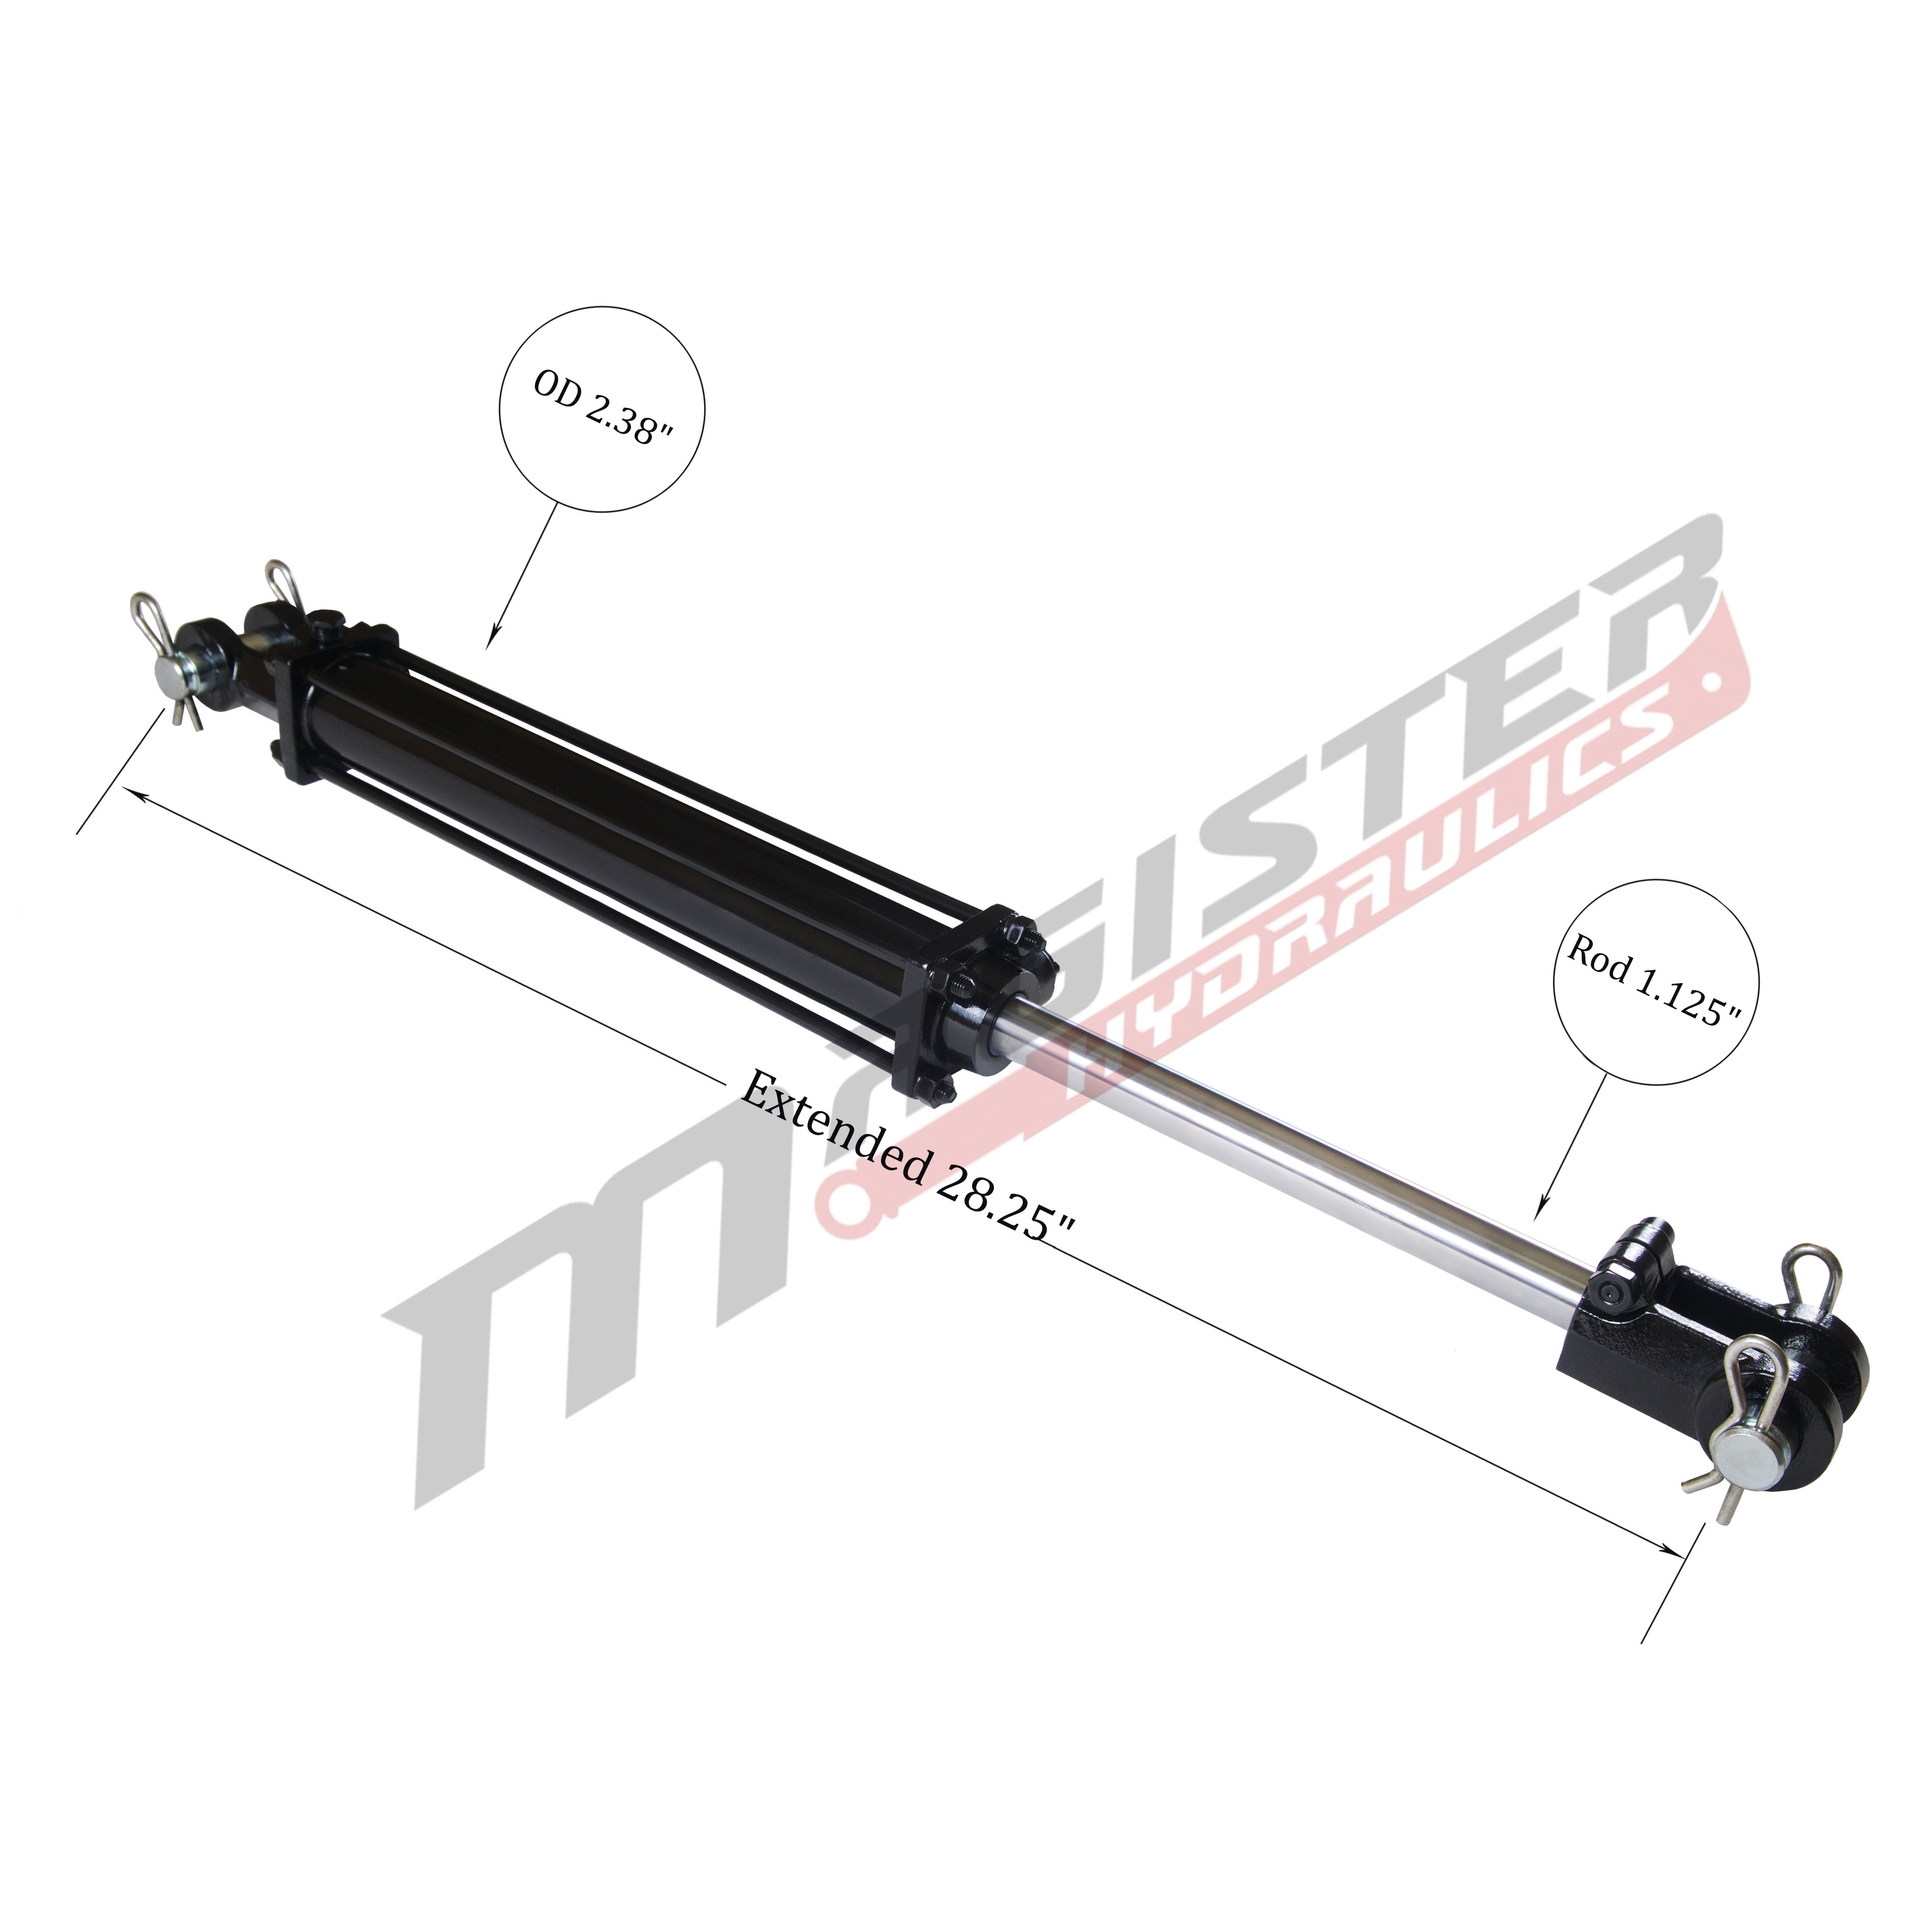 2 bore x 8 ASAE stroke hydraulic cylinder, tie rod double acting cylinder | Magister Hydraulics